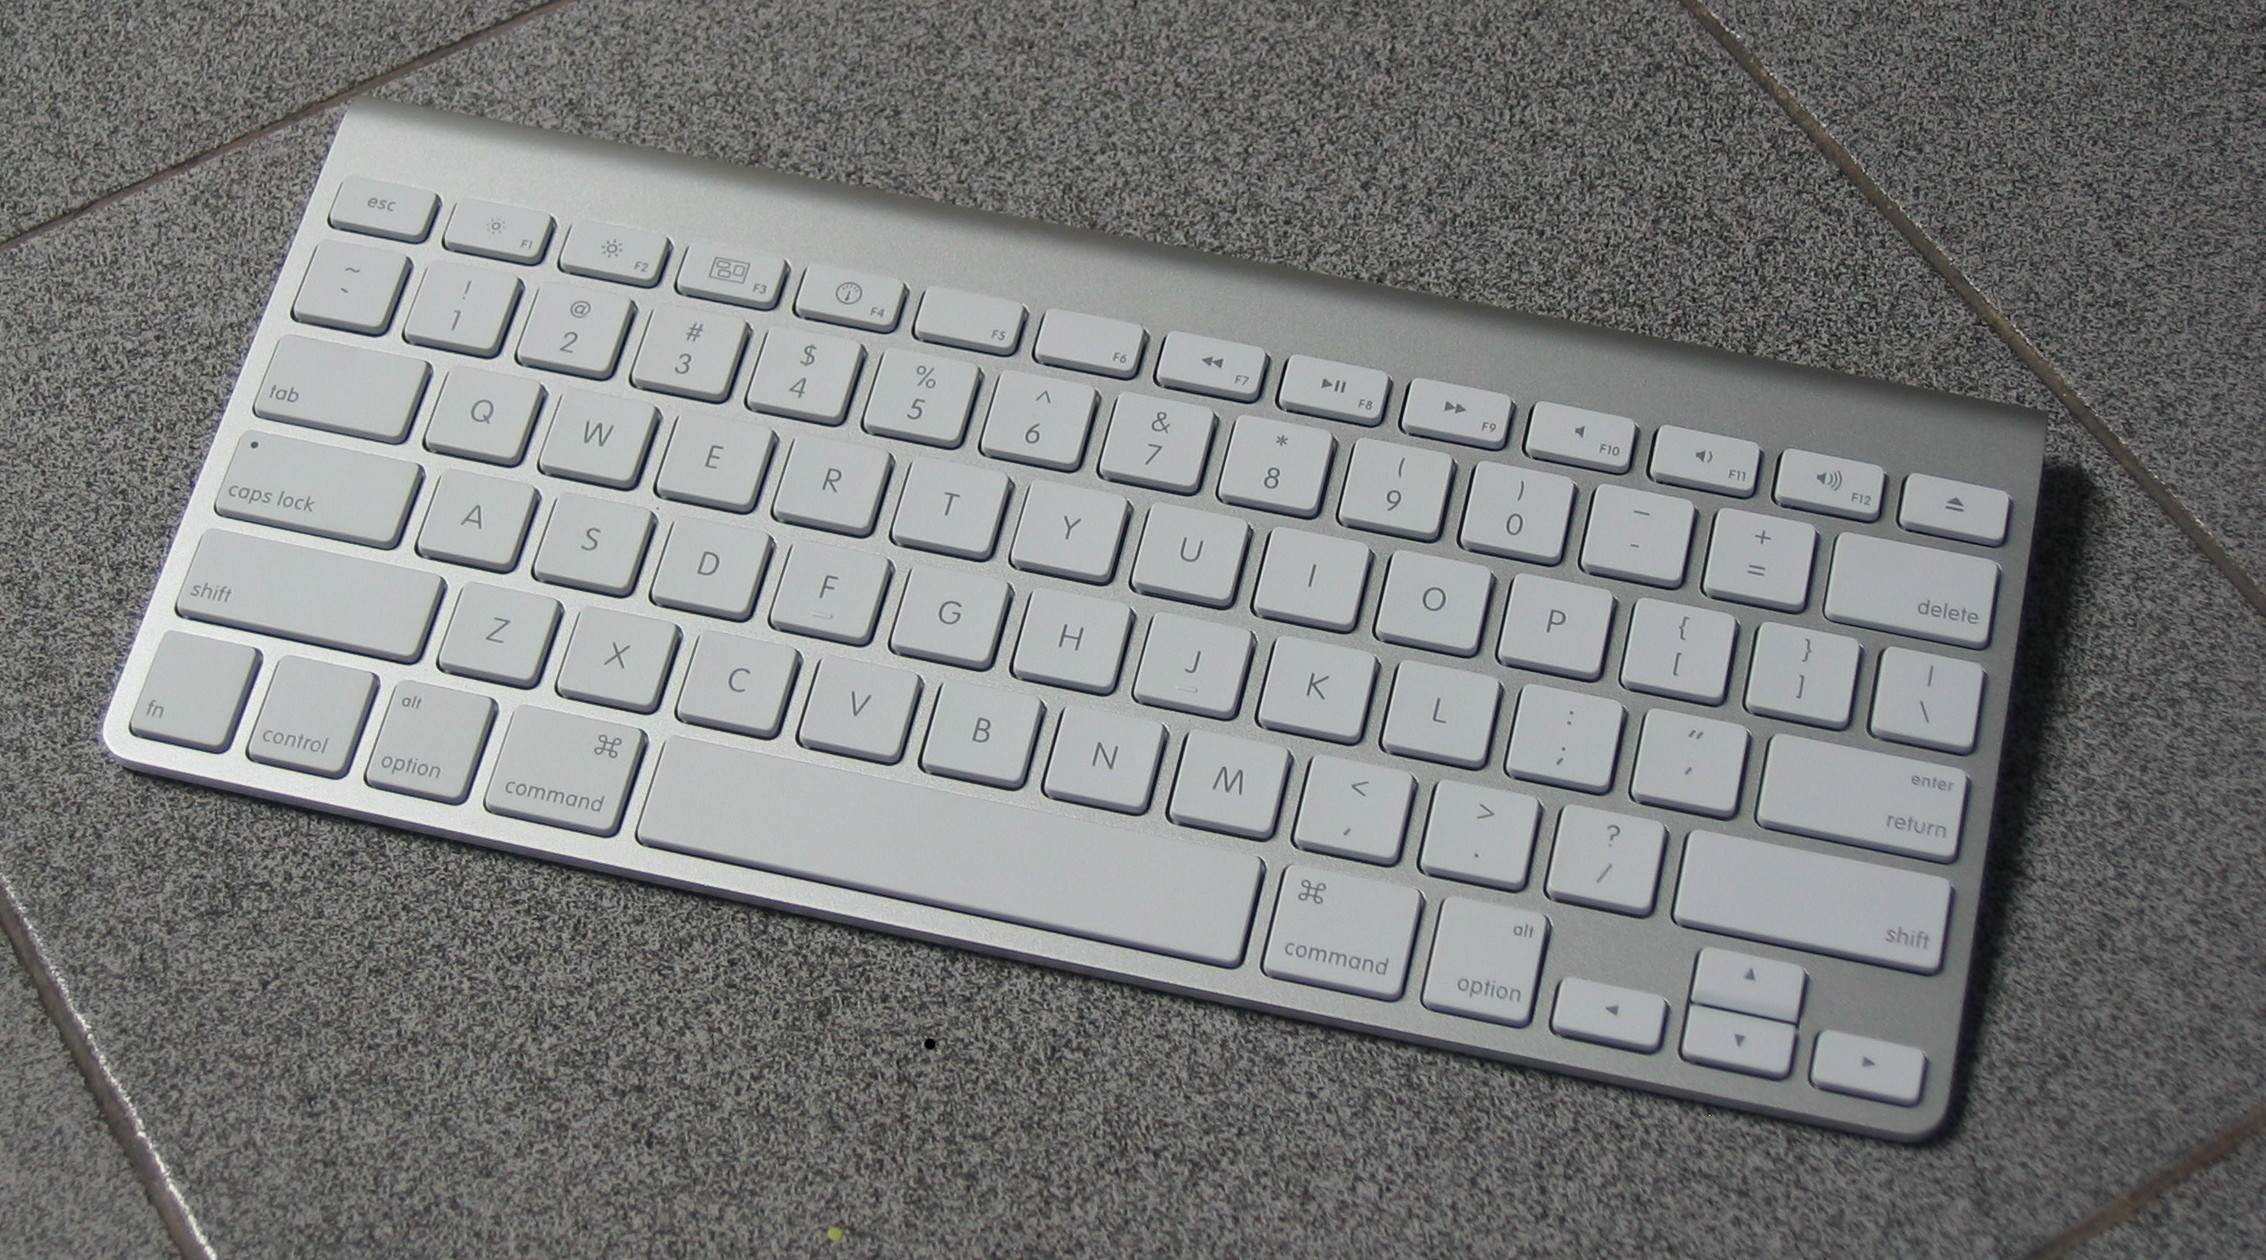 02a5f20a663 Apple Wireless Keyboard - Wikipedia